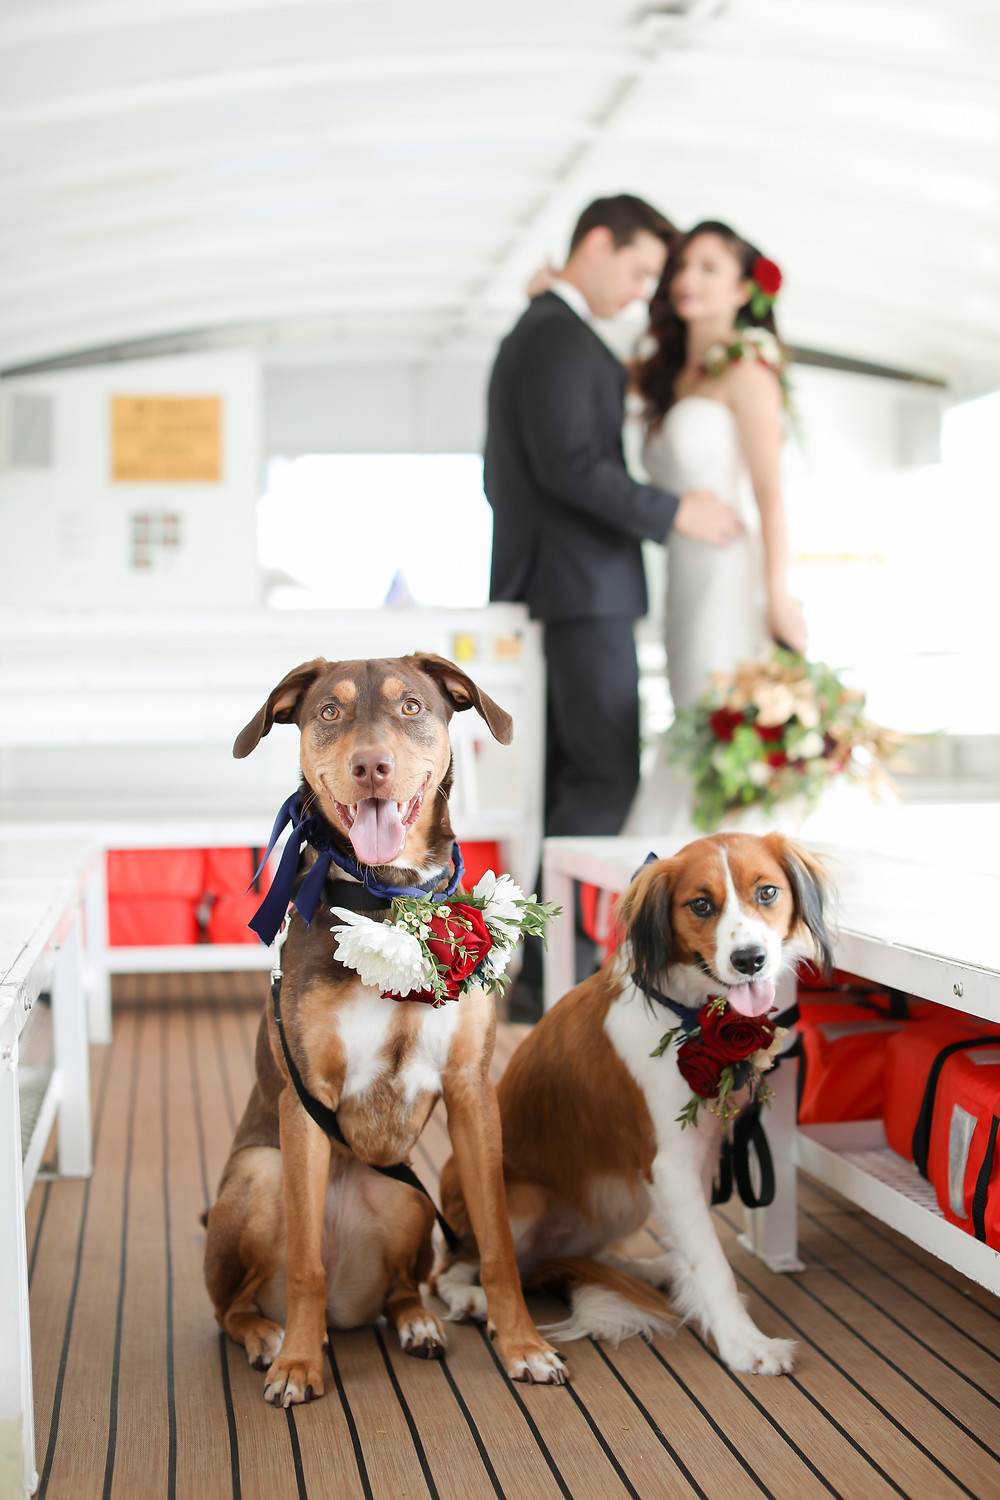 Two good dogs wearing their flower collars and their newlywed owners embrace behind them.